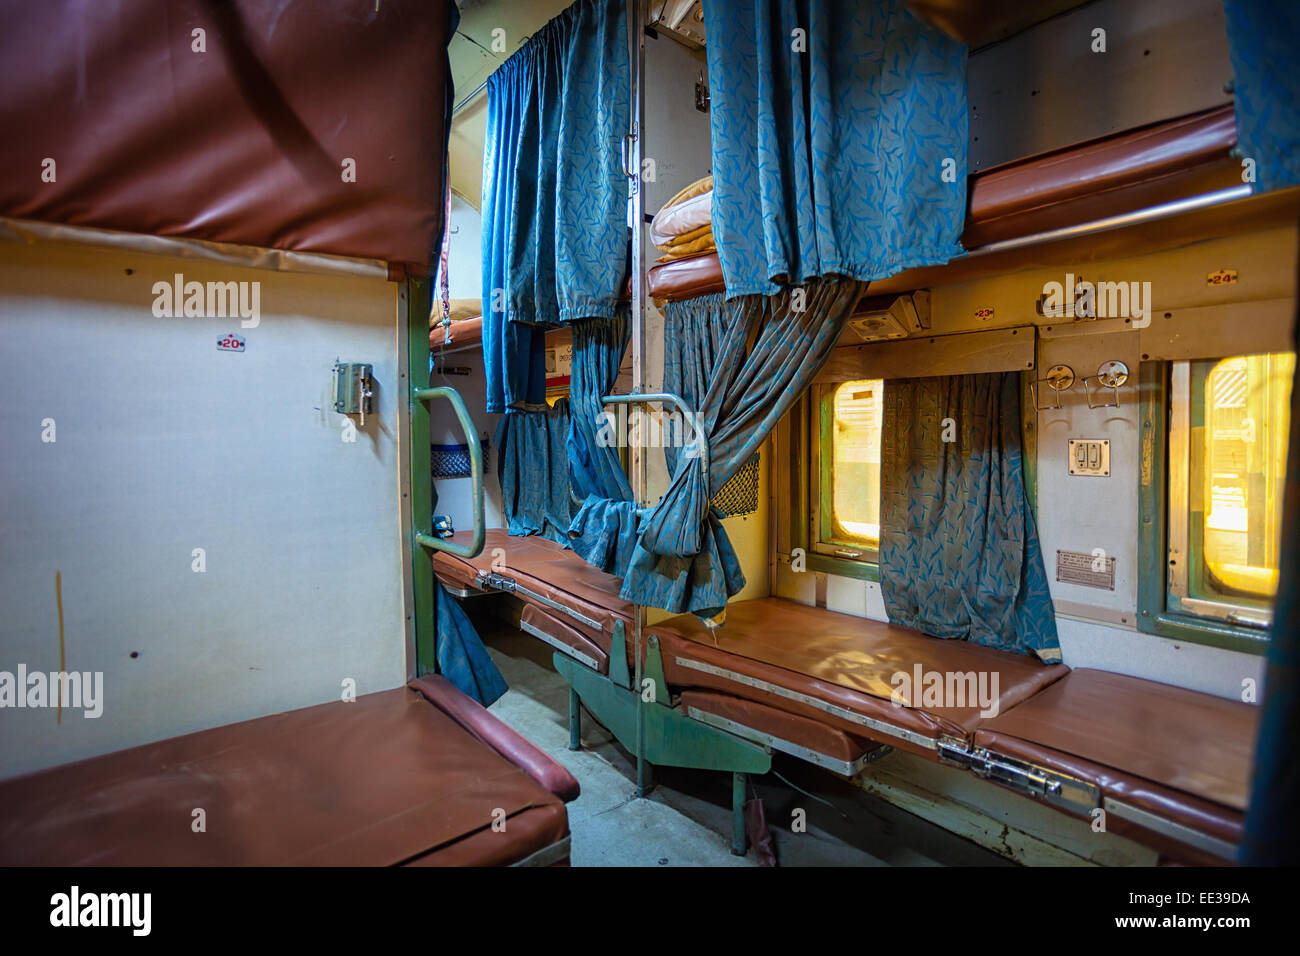 Inside a grungy and uncomfortable passenger car aboard a train in India. - Stock Image